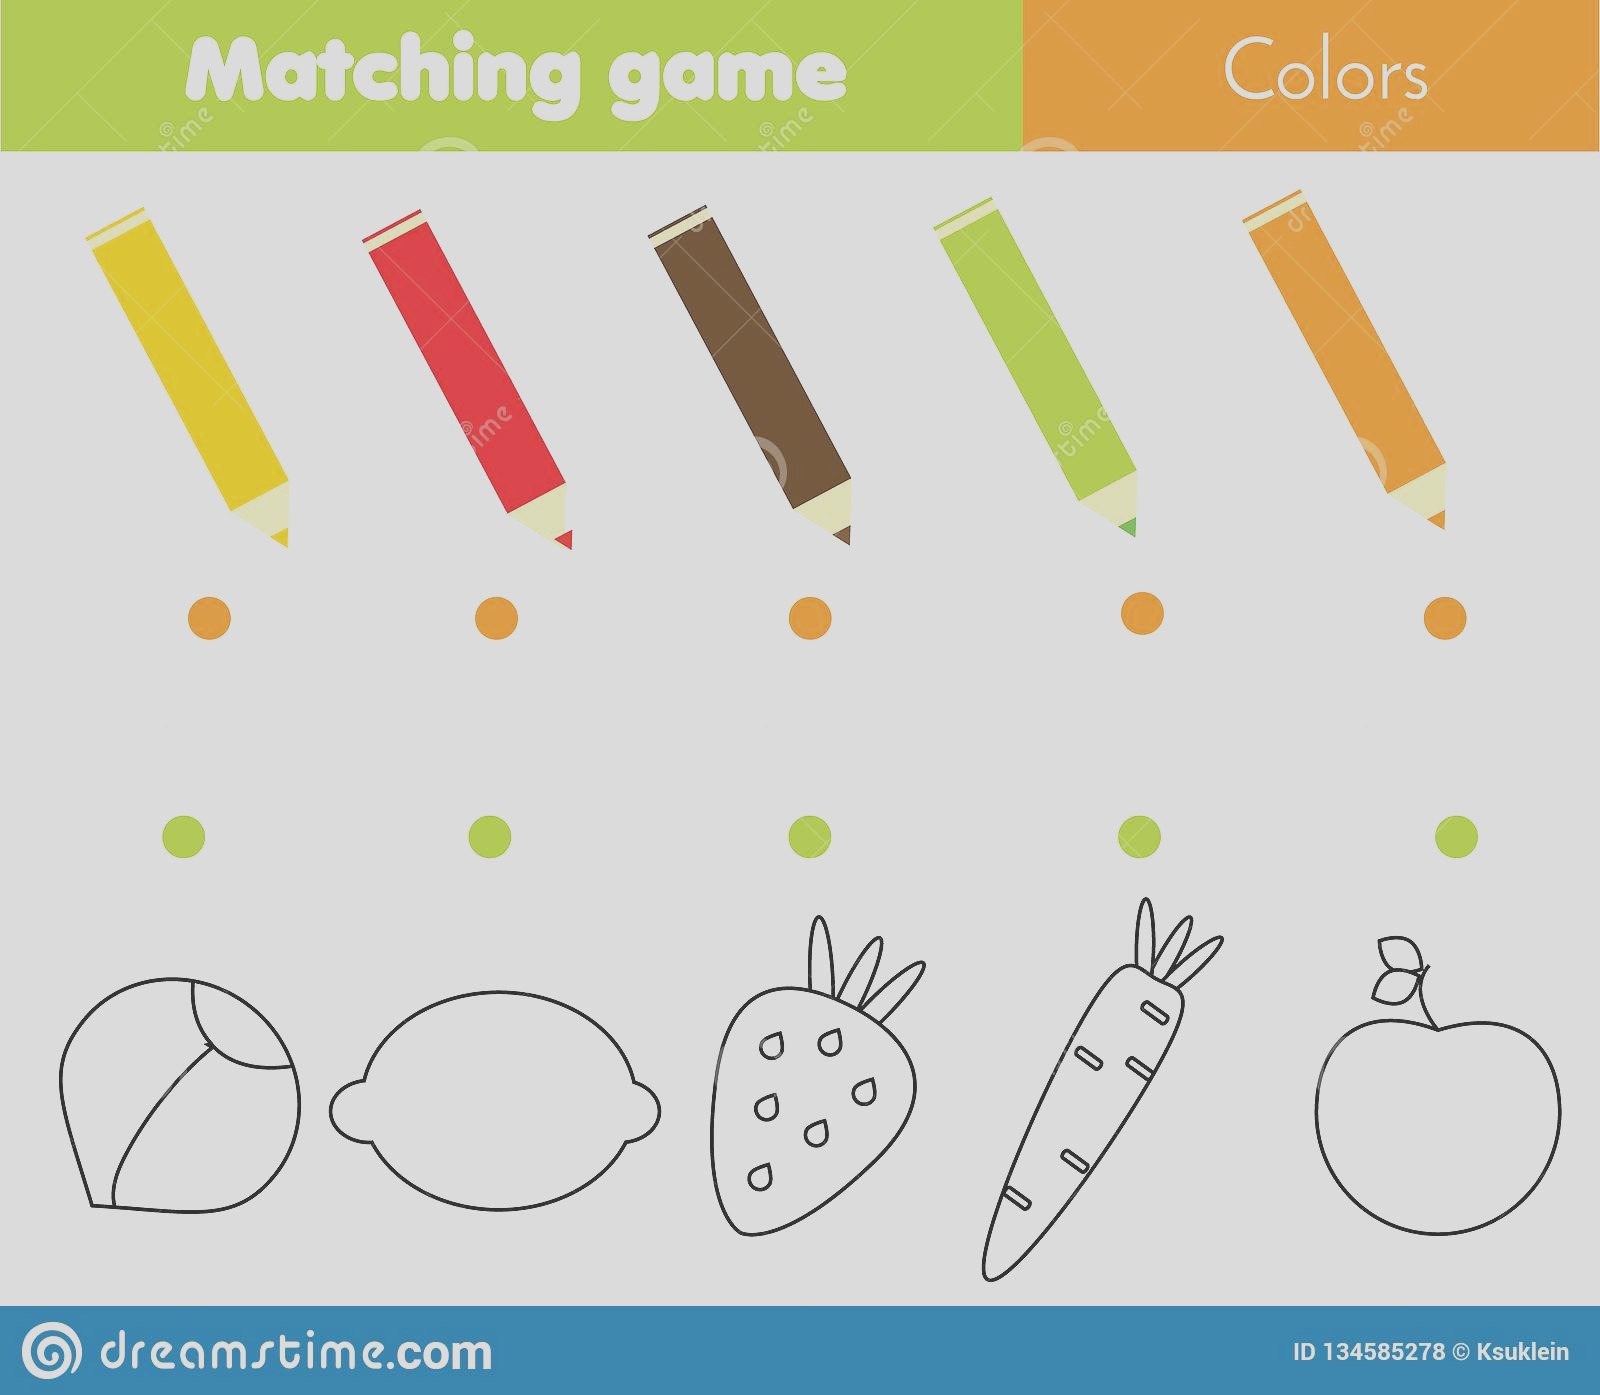 matching educational children game match ve ables fruits color activity pre school kids toddlers learning image